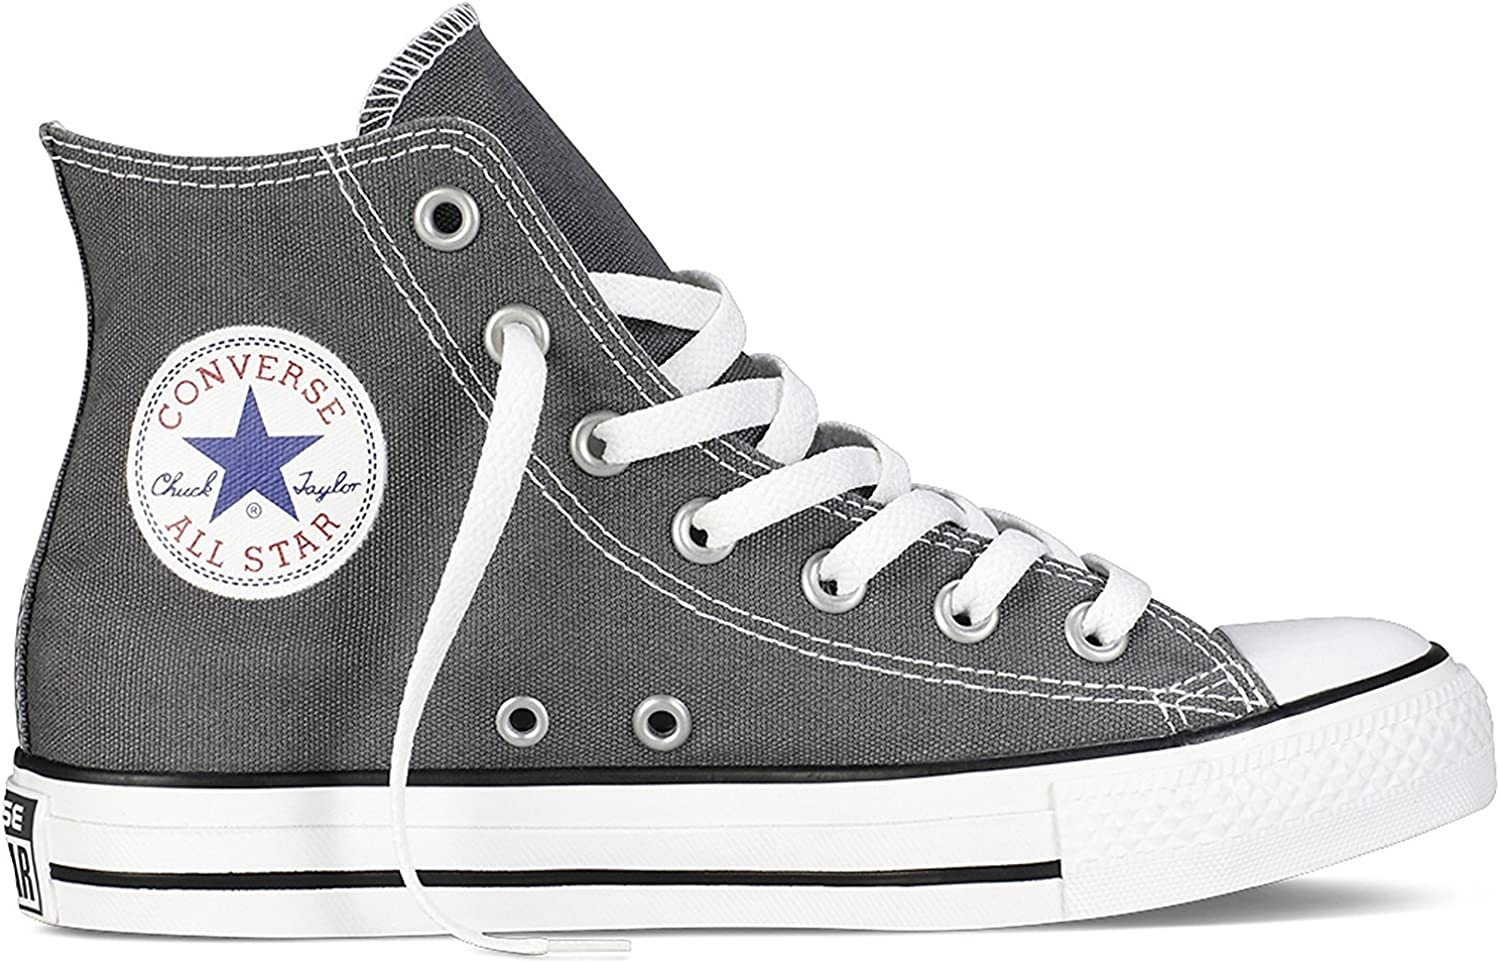 Converse Chuck Taylor All Star Classic High Top Sneakers Black White